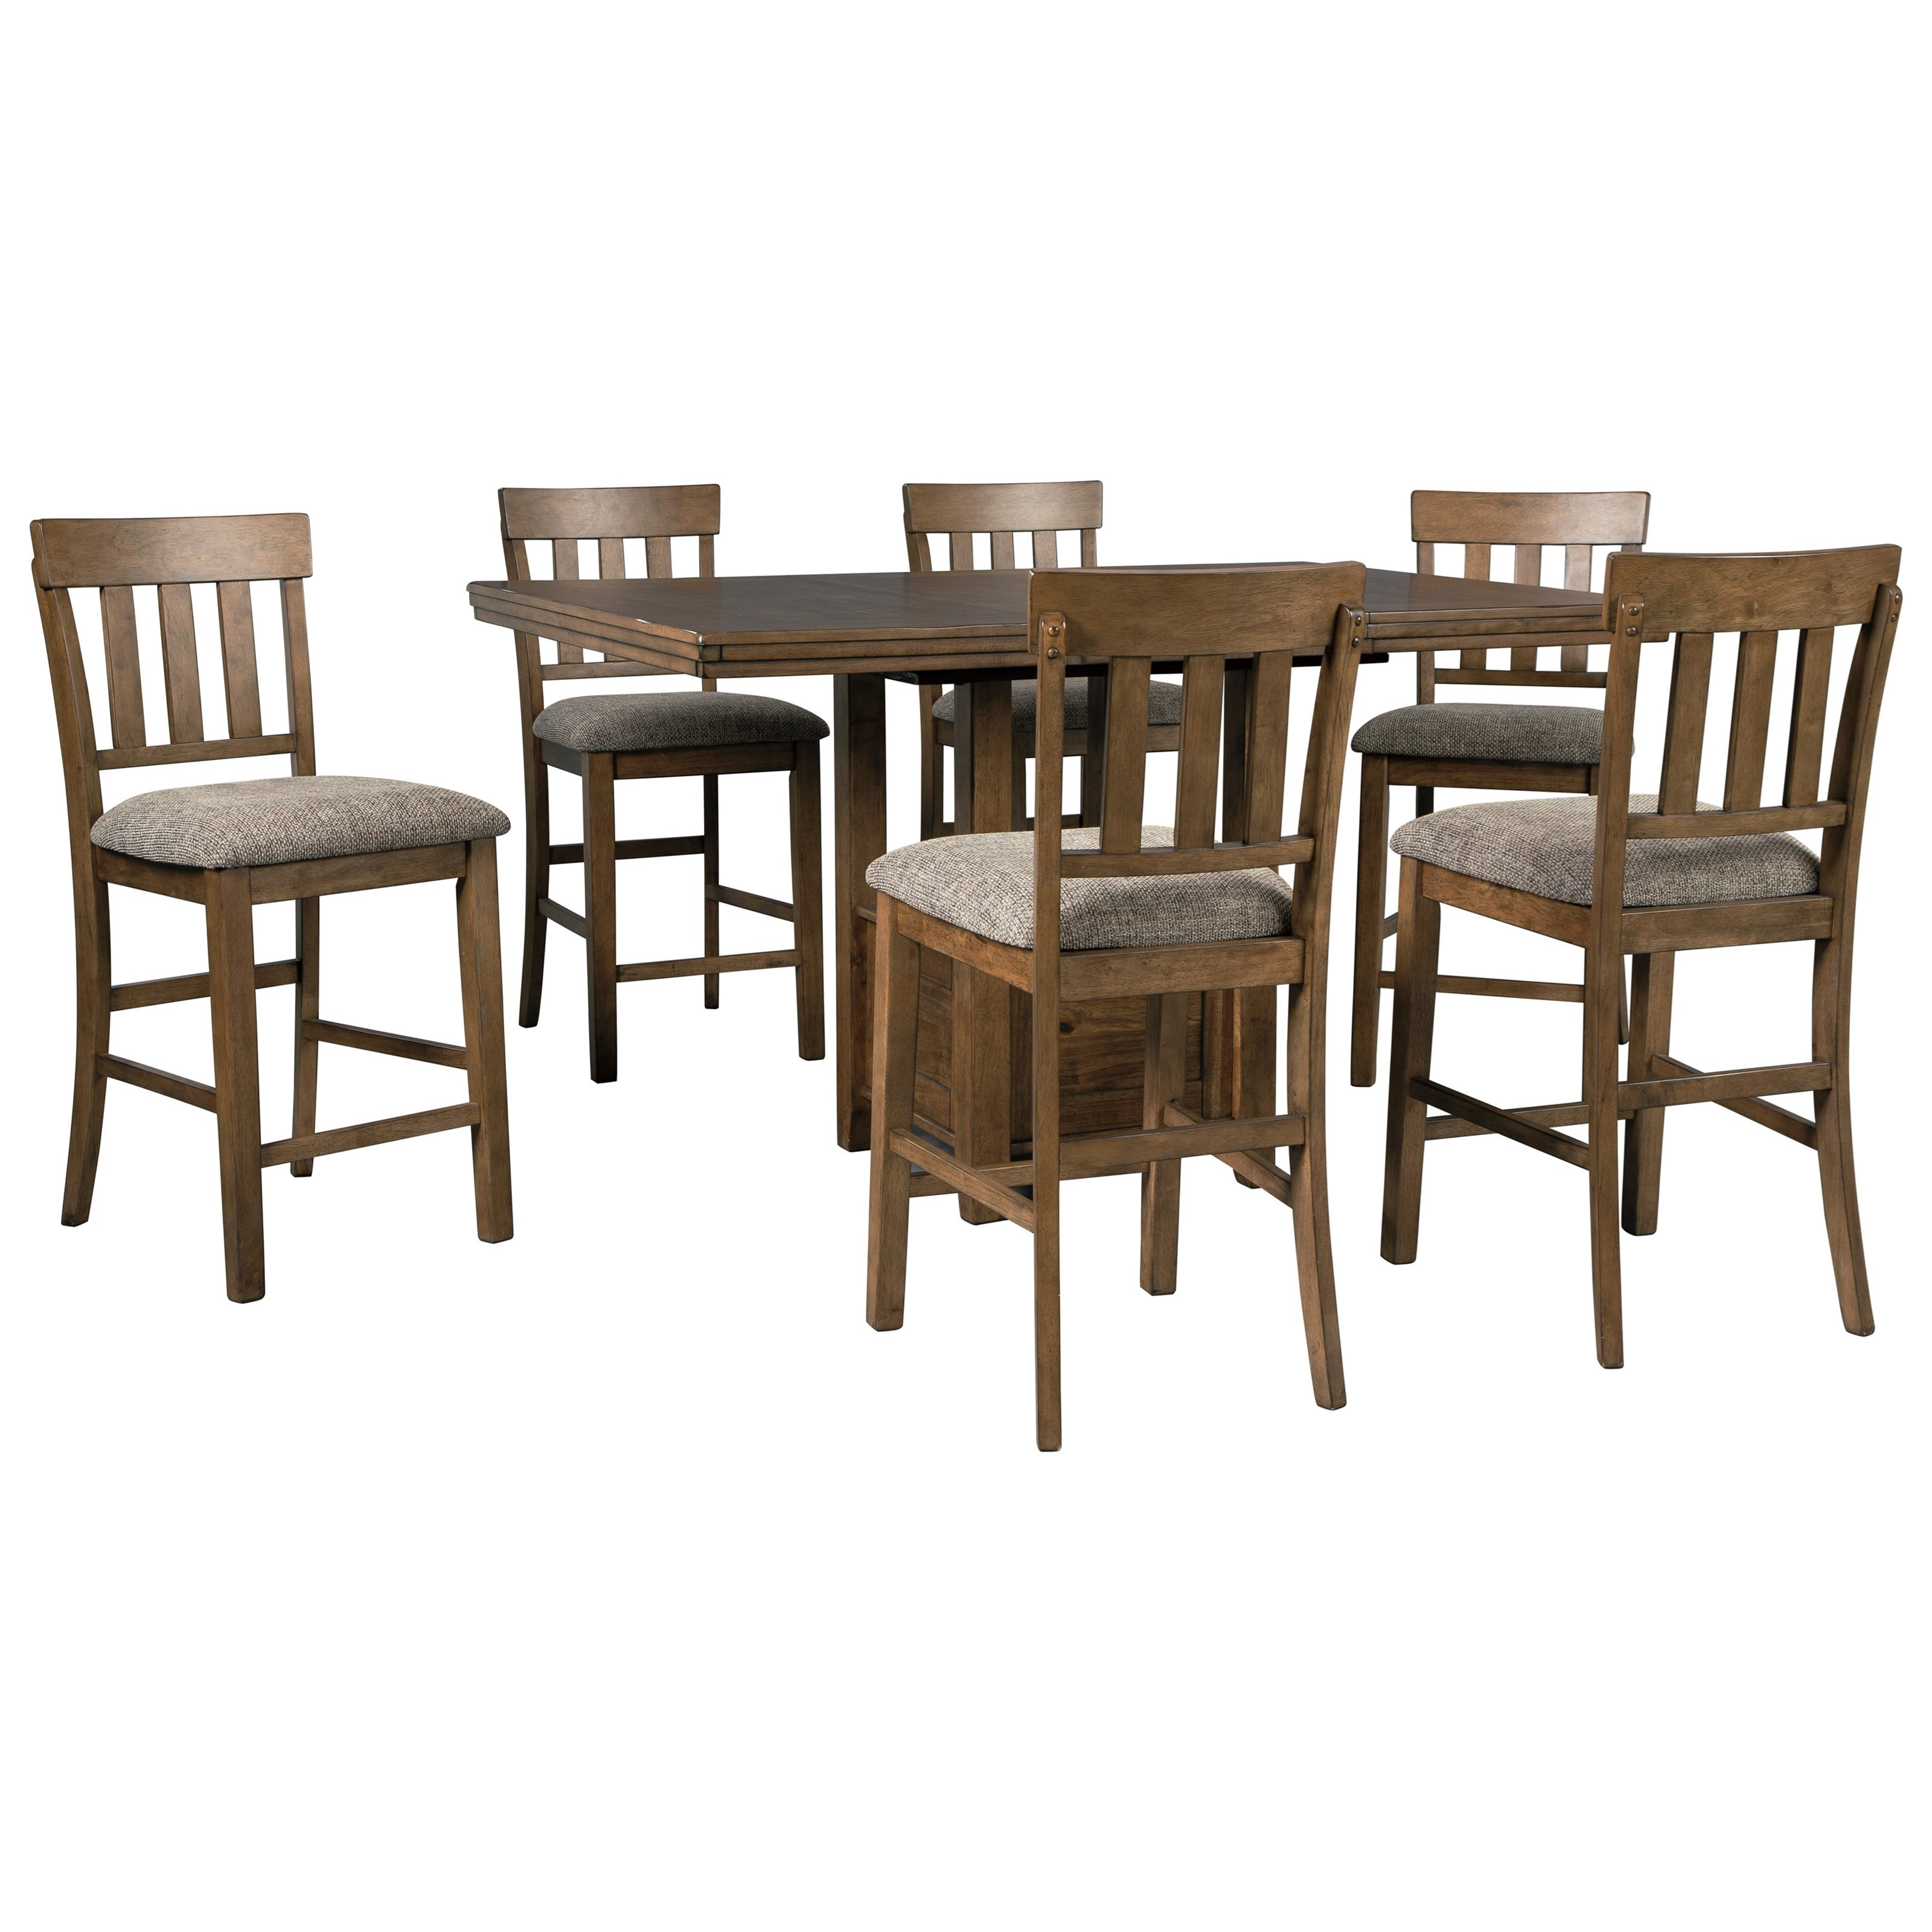 Flaybern 7-Piece Counter Table Set by Benchcraft at Northeast Factory Direct